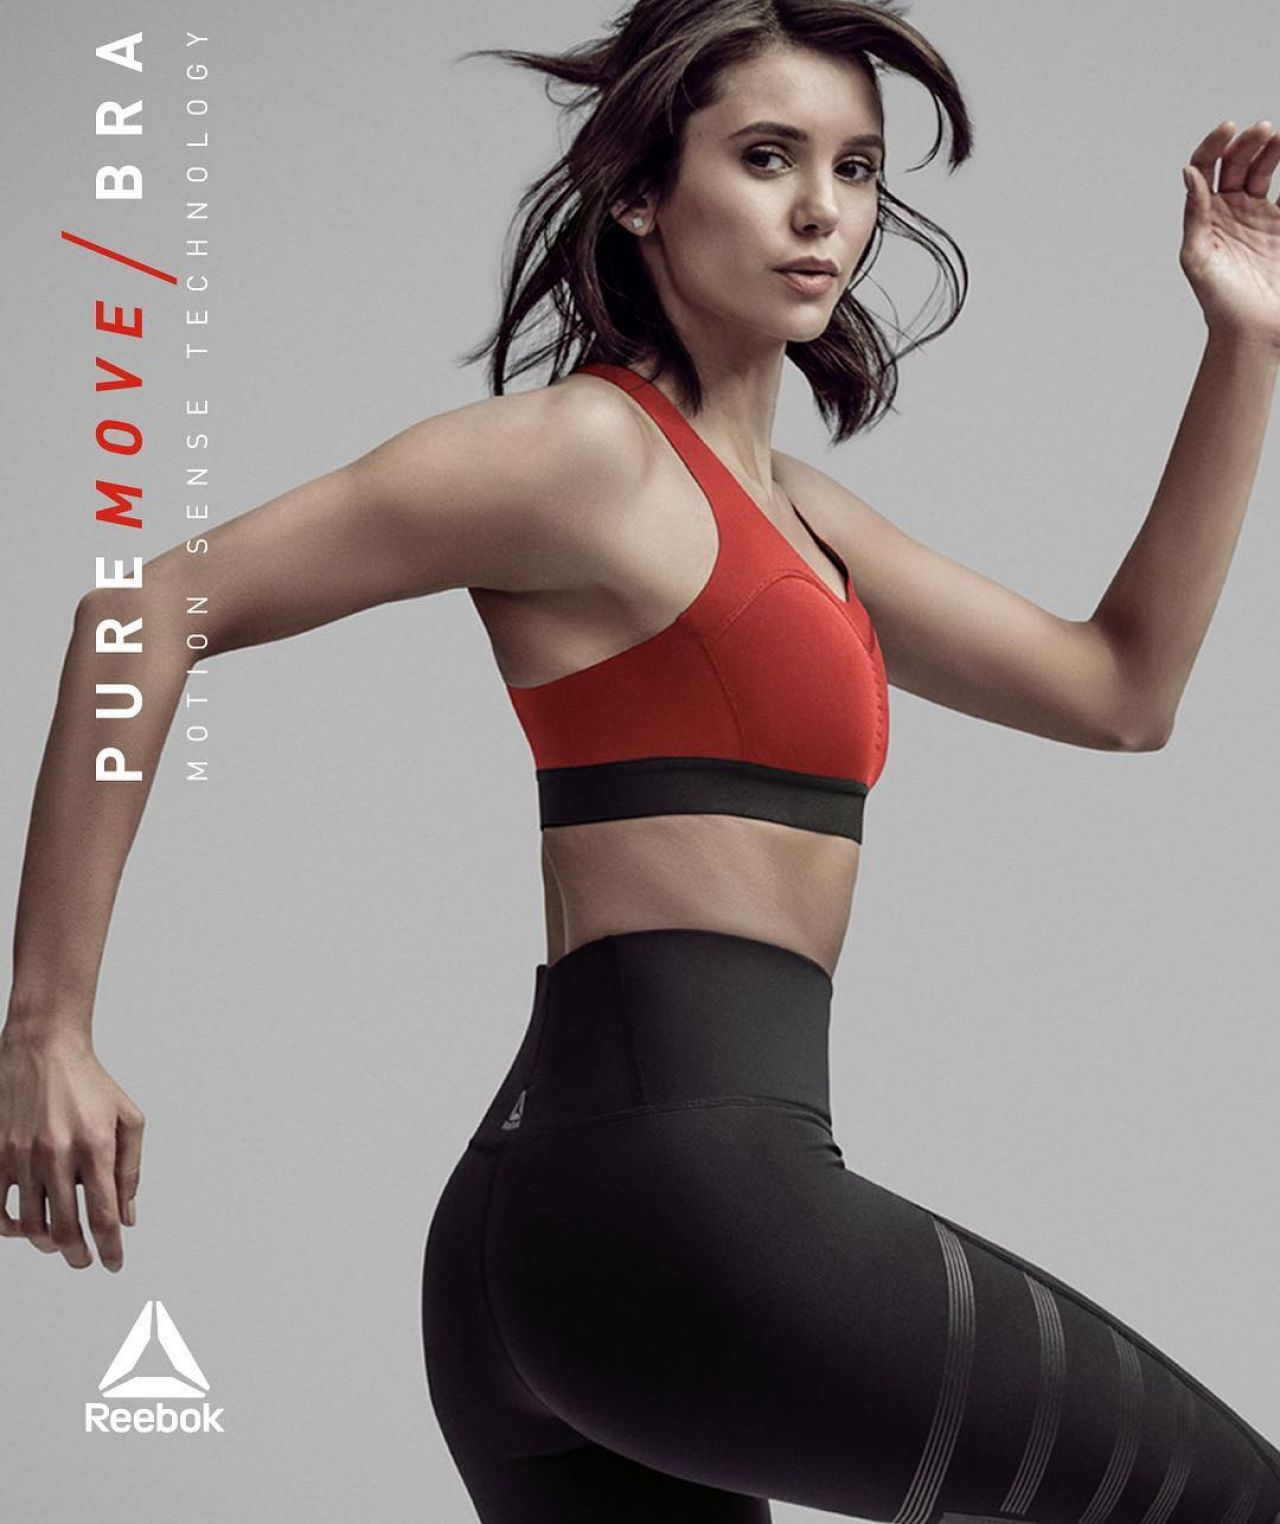 Nina Dobrev is sexy in red Reebok sports bra